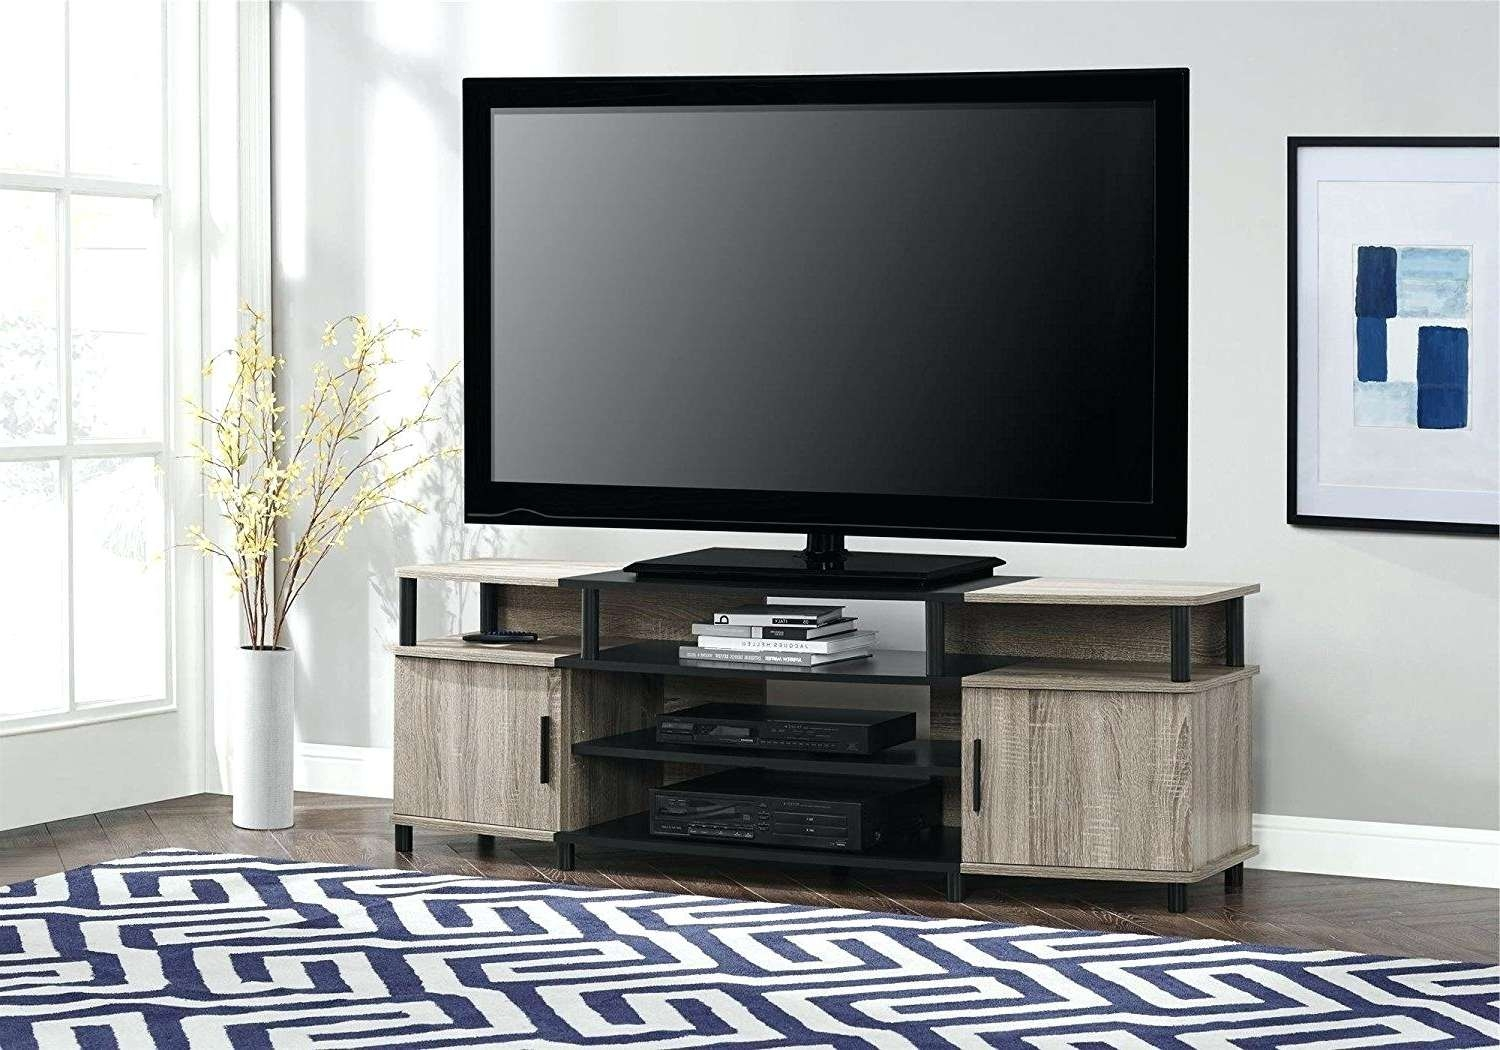 Tv Stand With Storage Baskets T V Stands Media Centers Value City Intended For Tv Stands With Storage Baskets (View 11 of 15)